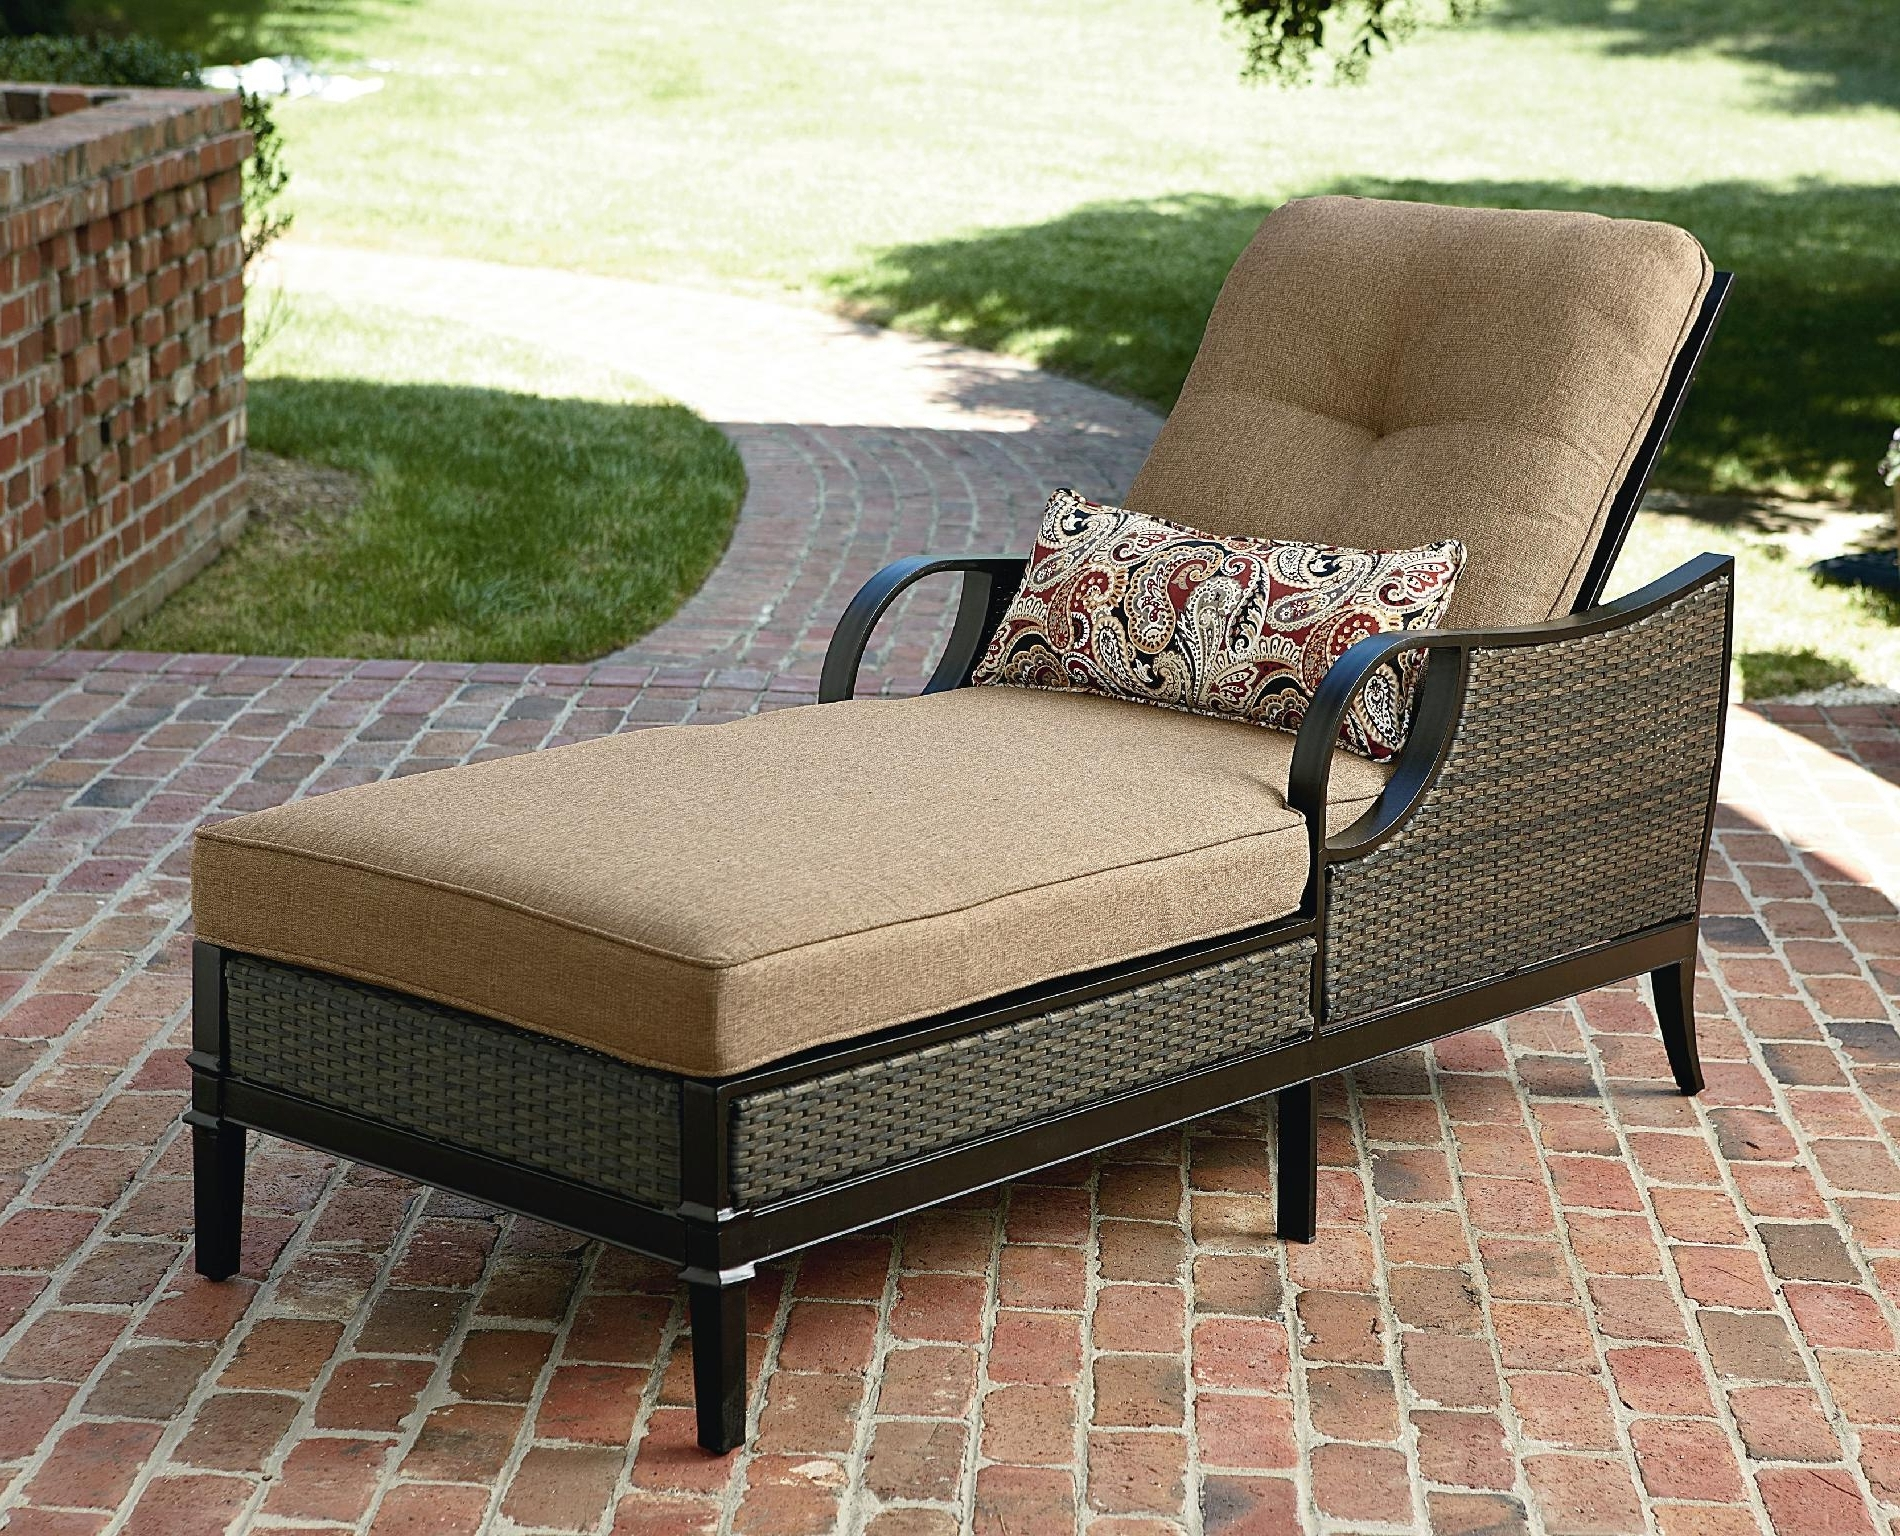 Patio Furniture Chaise Lounge Chairs • Lounge Chairs Ideas With Most Up To Date Outdoor Pool Furniture Chaise Lounges (View 12 of 15)